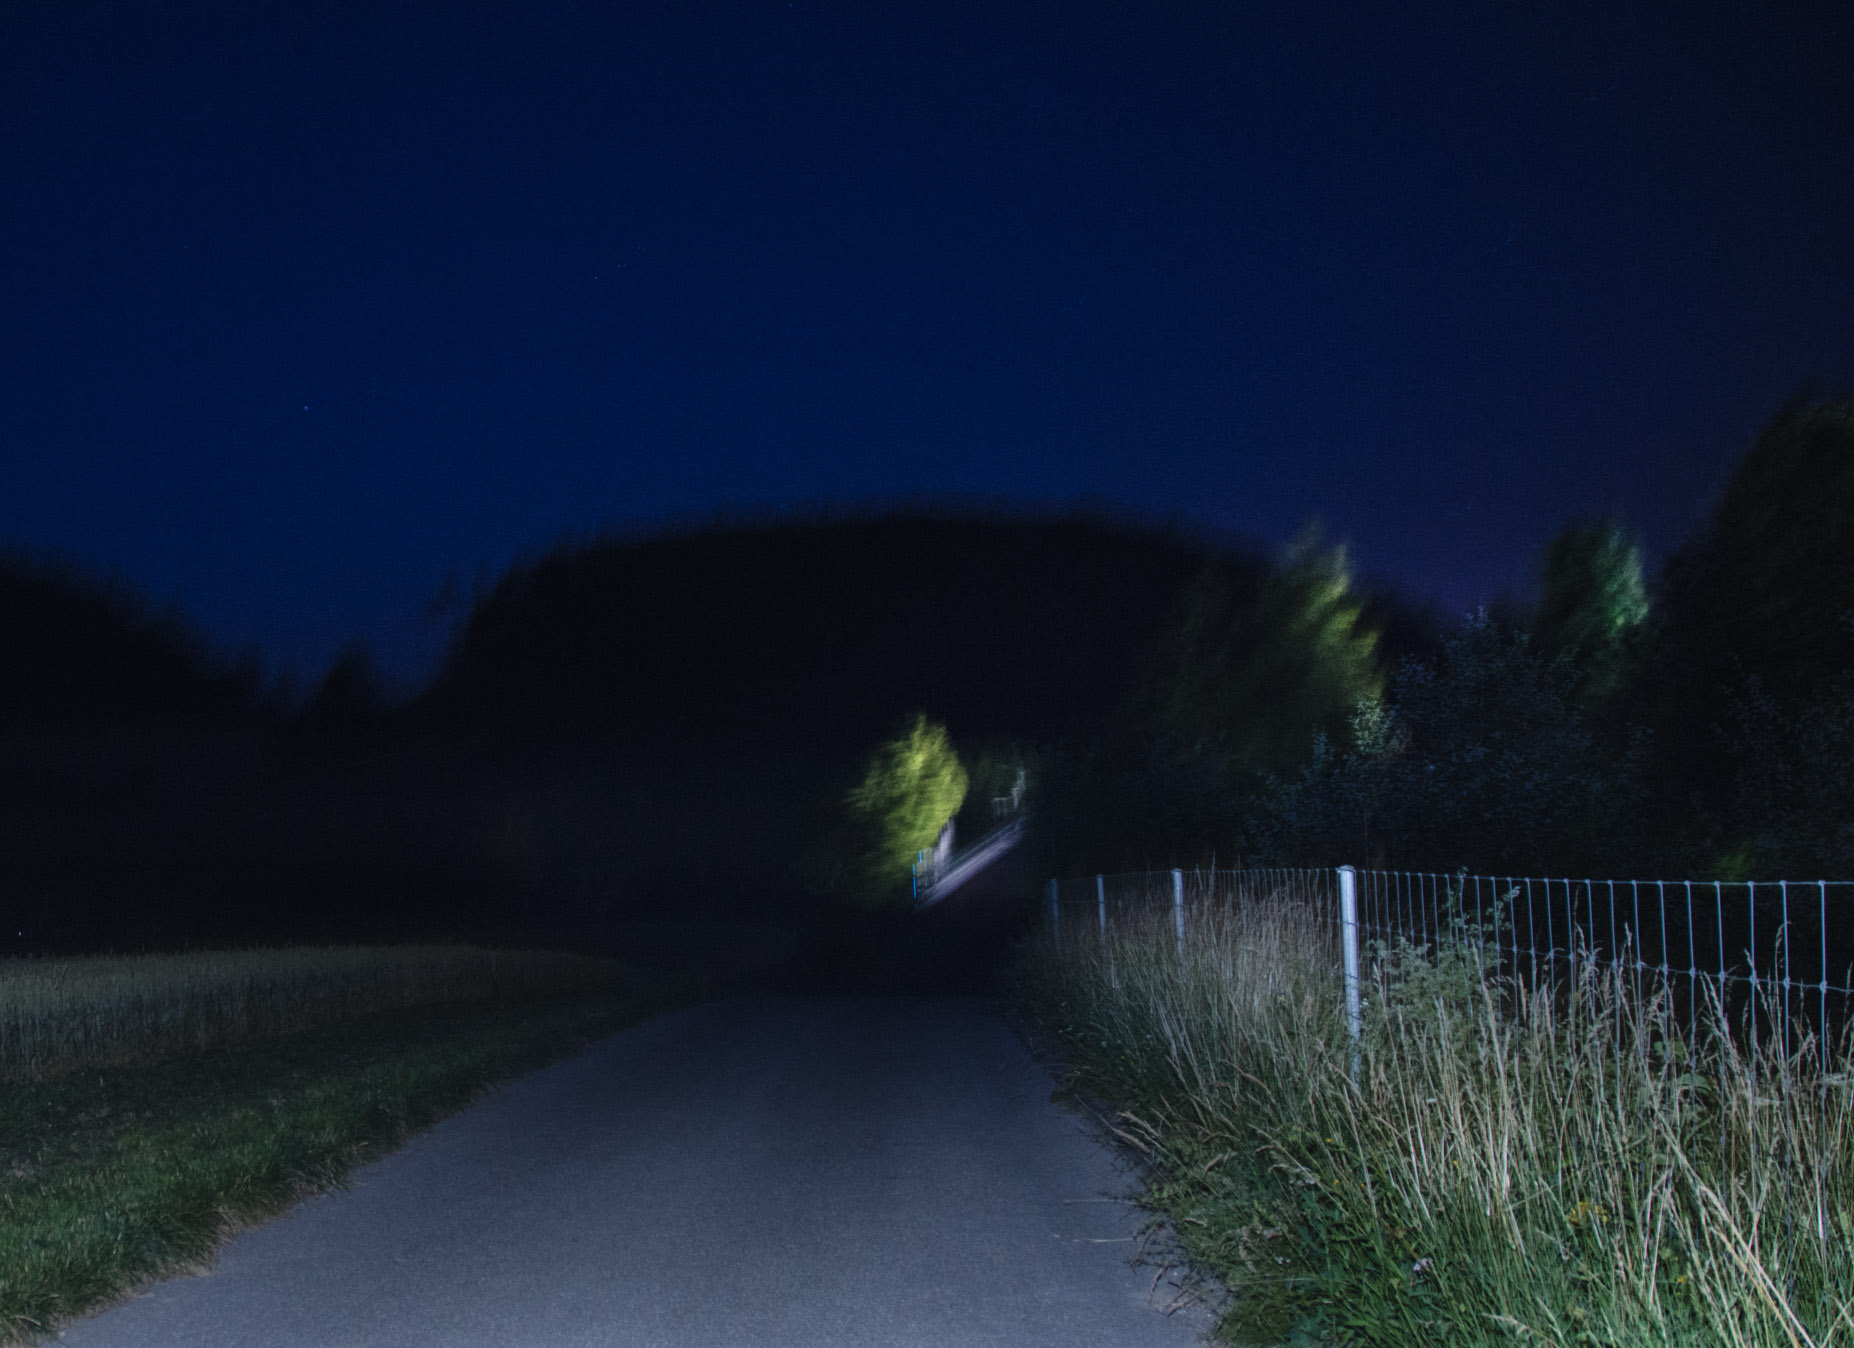 Photo by Pascal Sommer - 4 second handheld exposure with flash